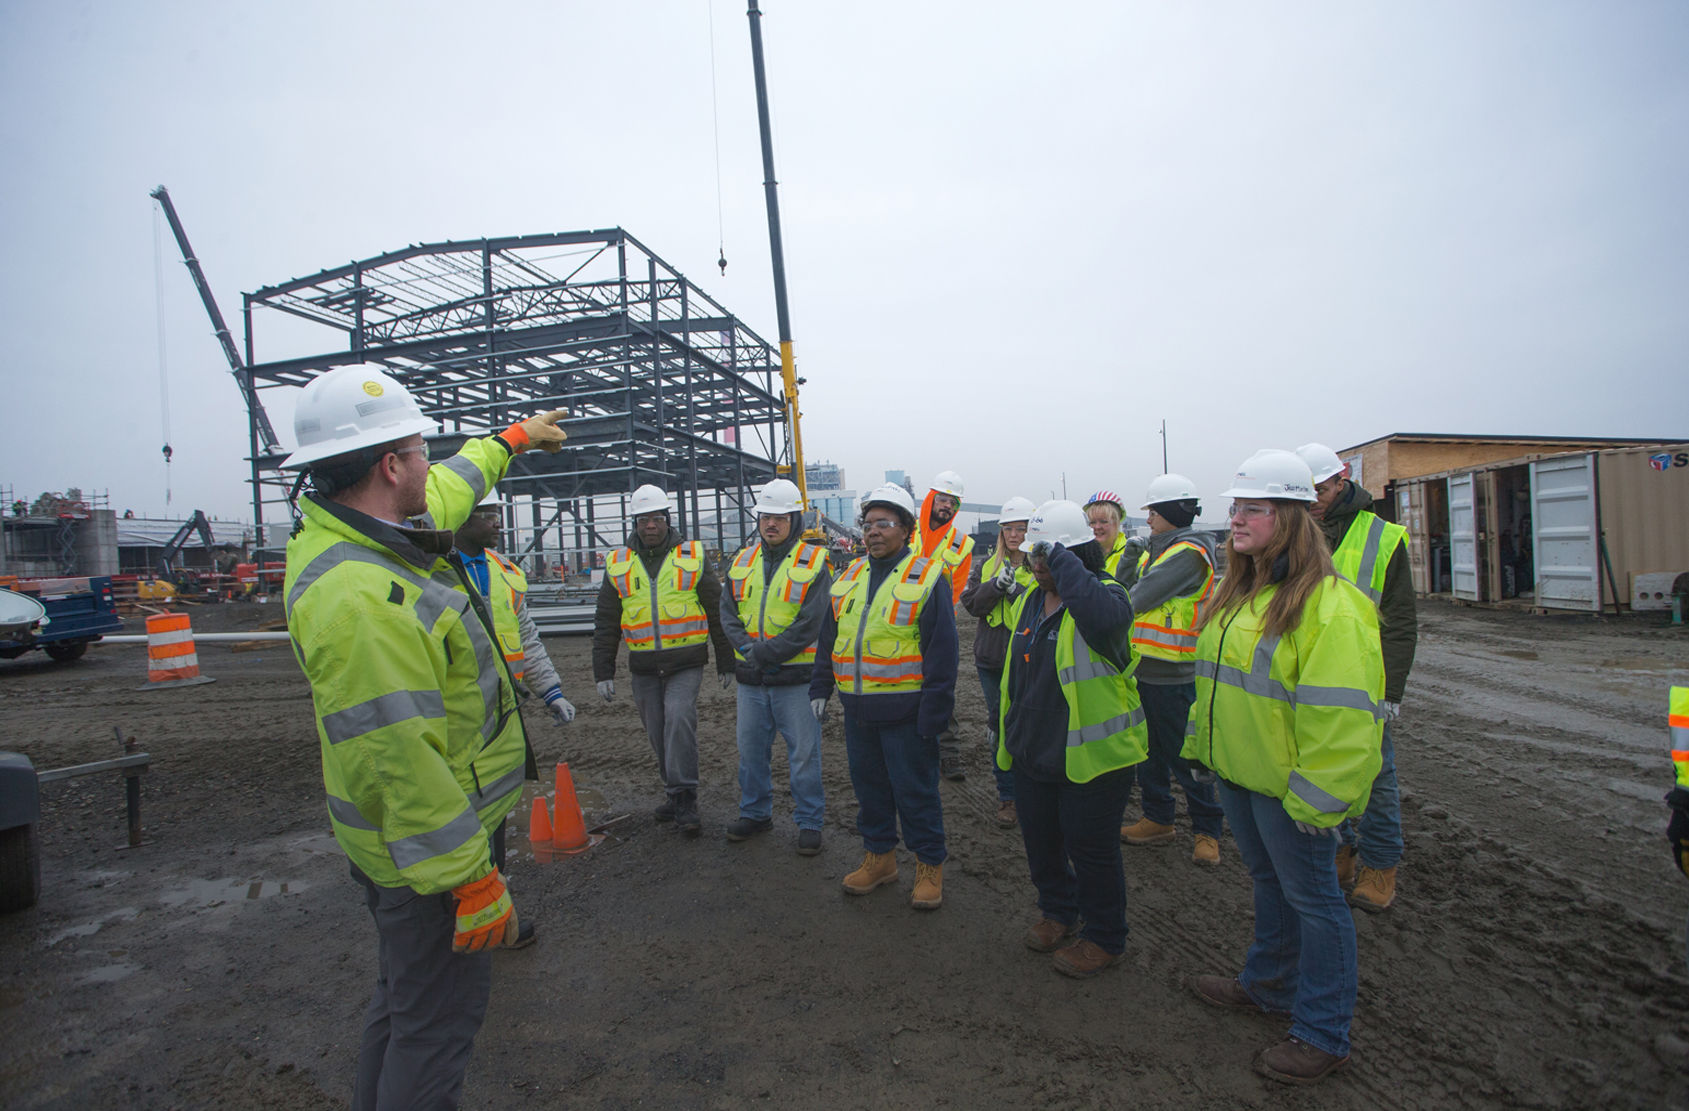 A group of students wearing hard hats and safety gear on a construction site being led by their instructor.